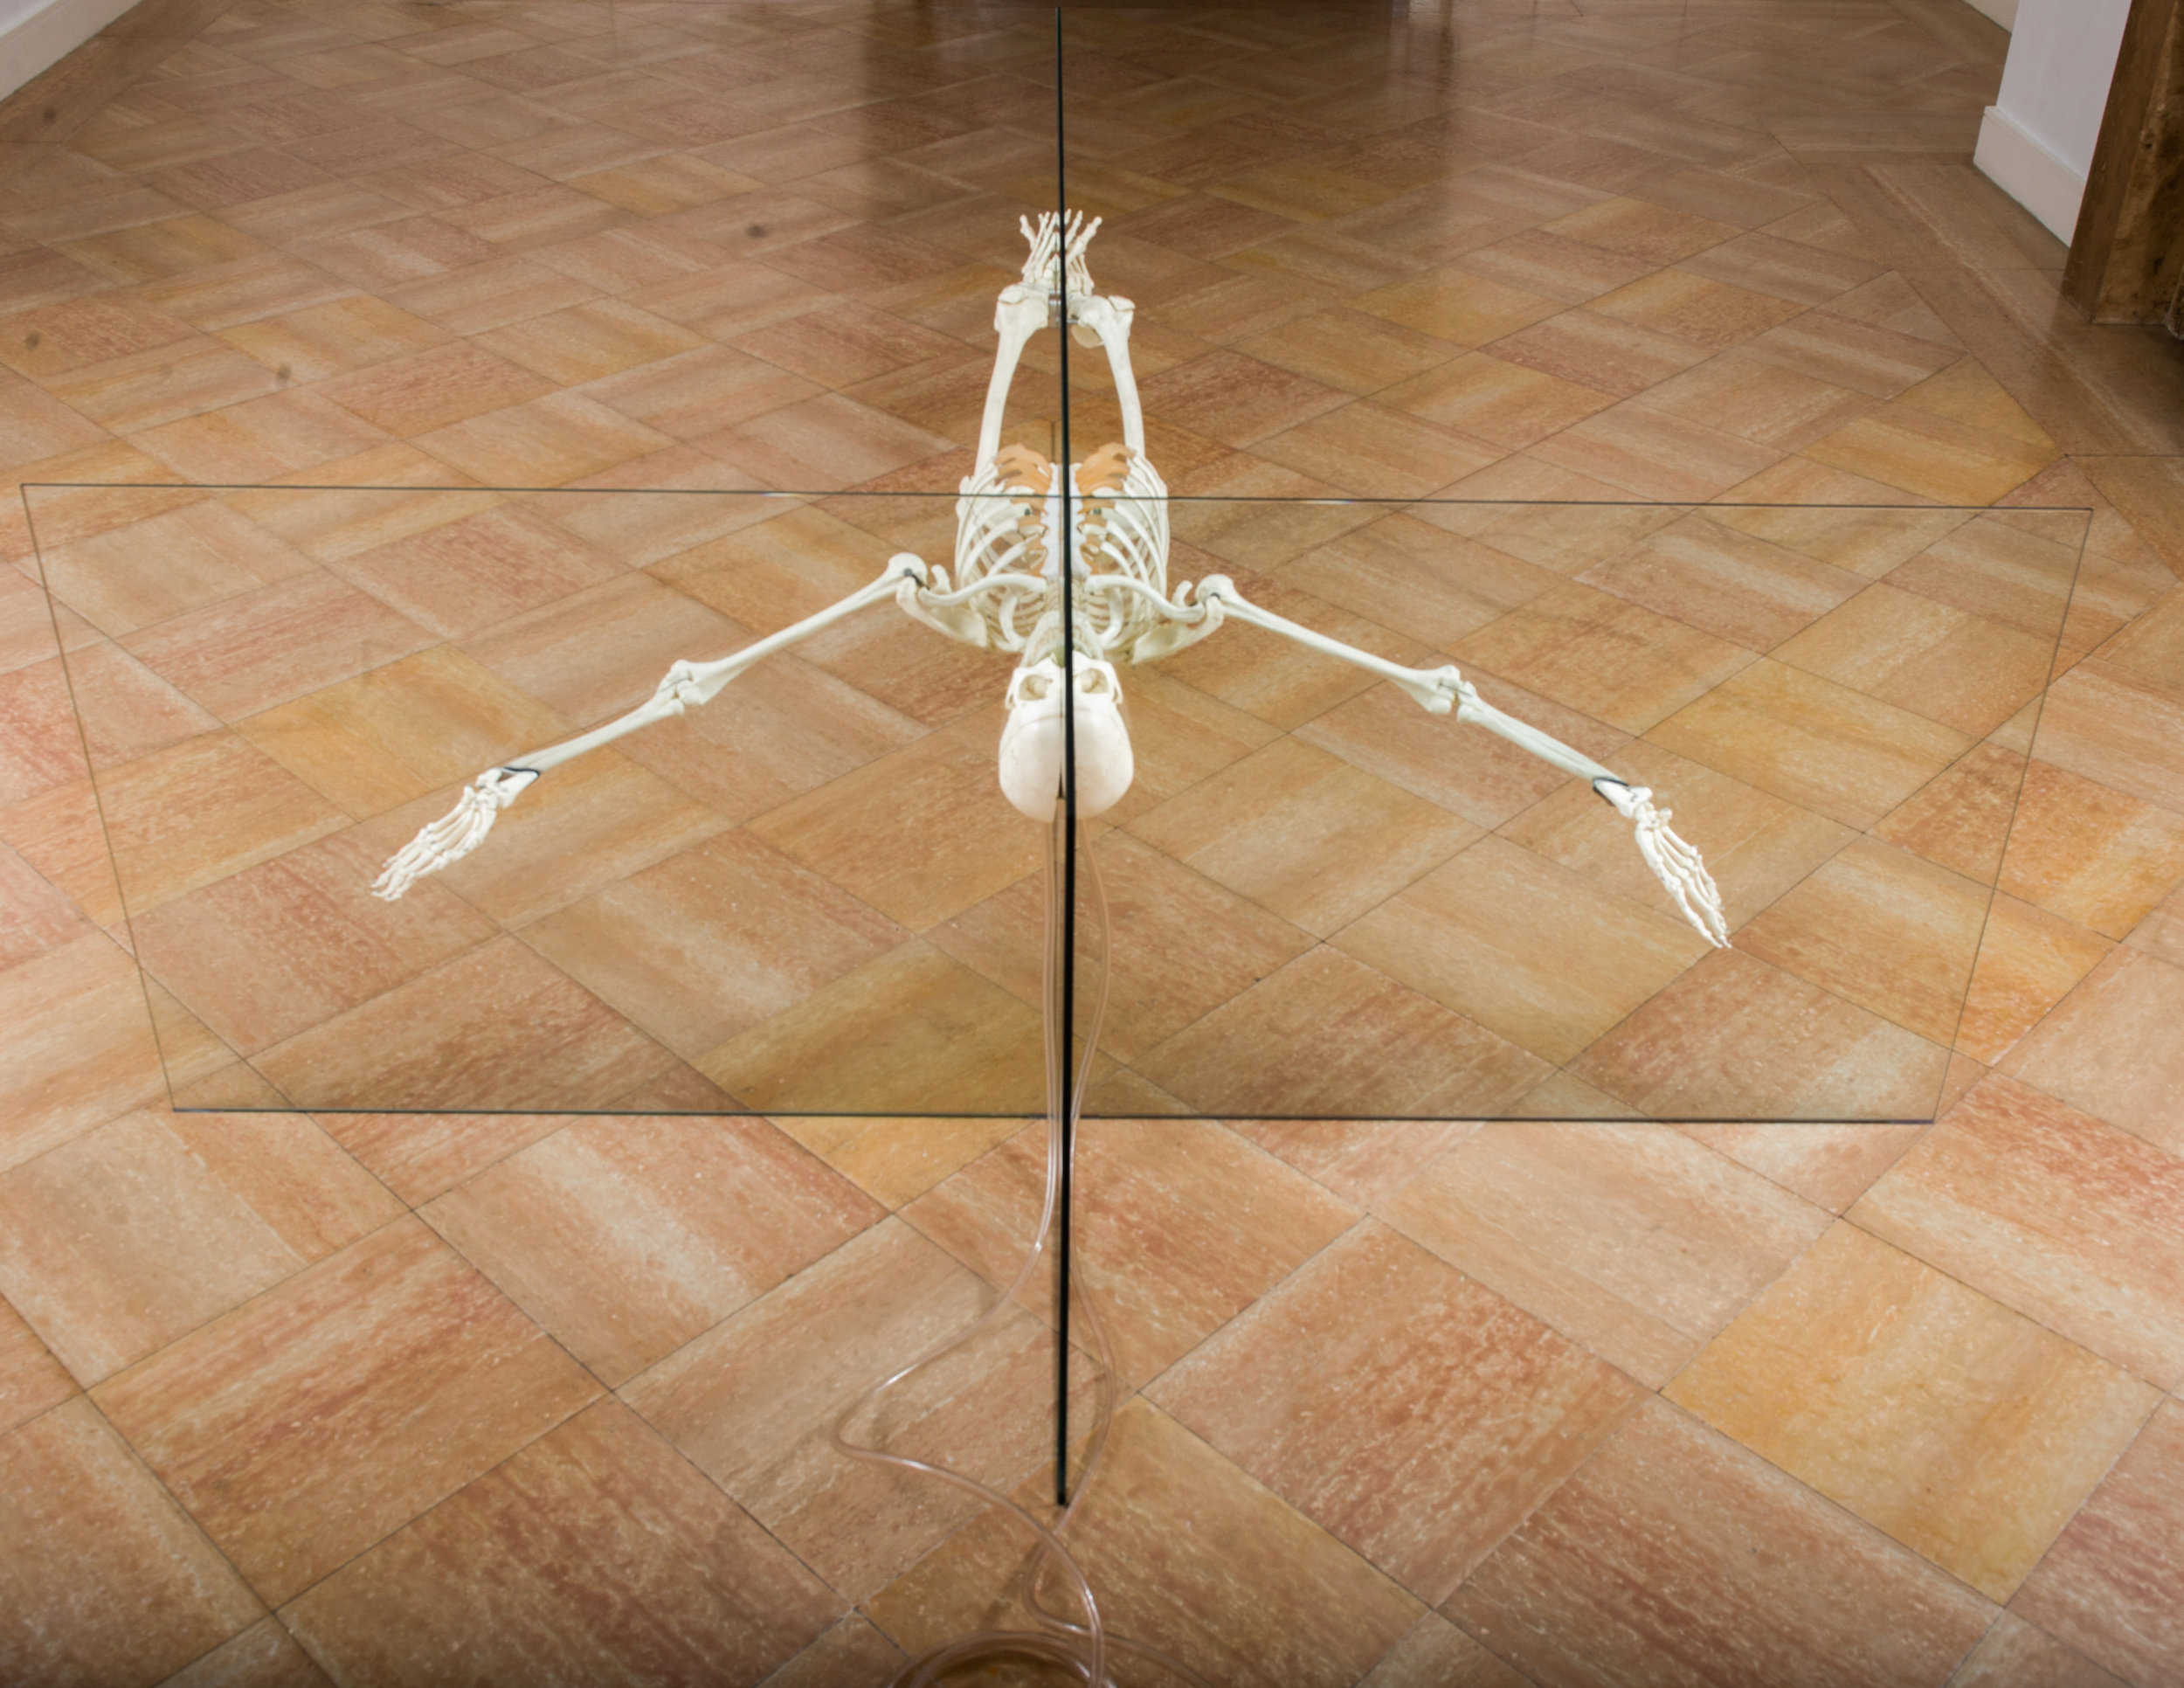 Damien Hirst, Rehab is for Quitters, 1998-1999